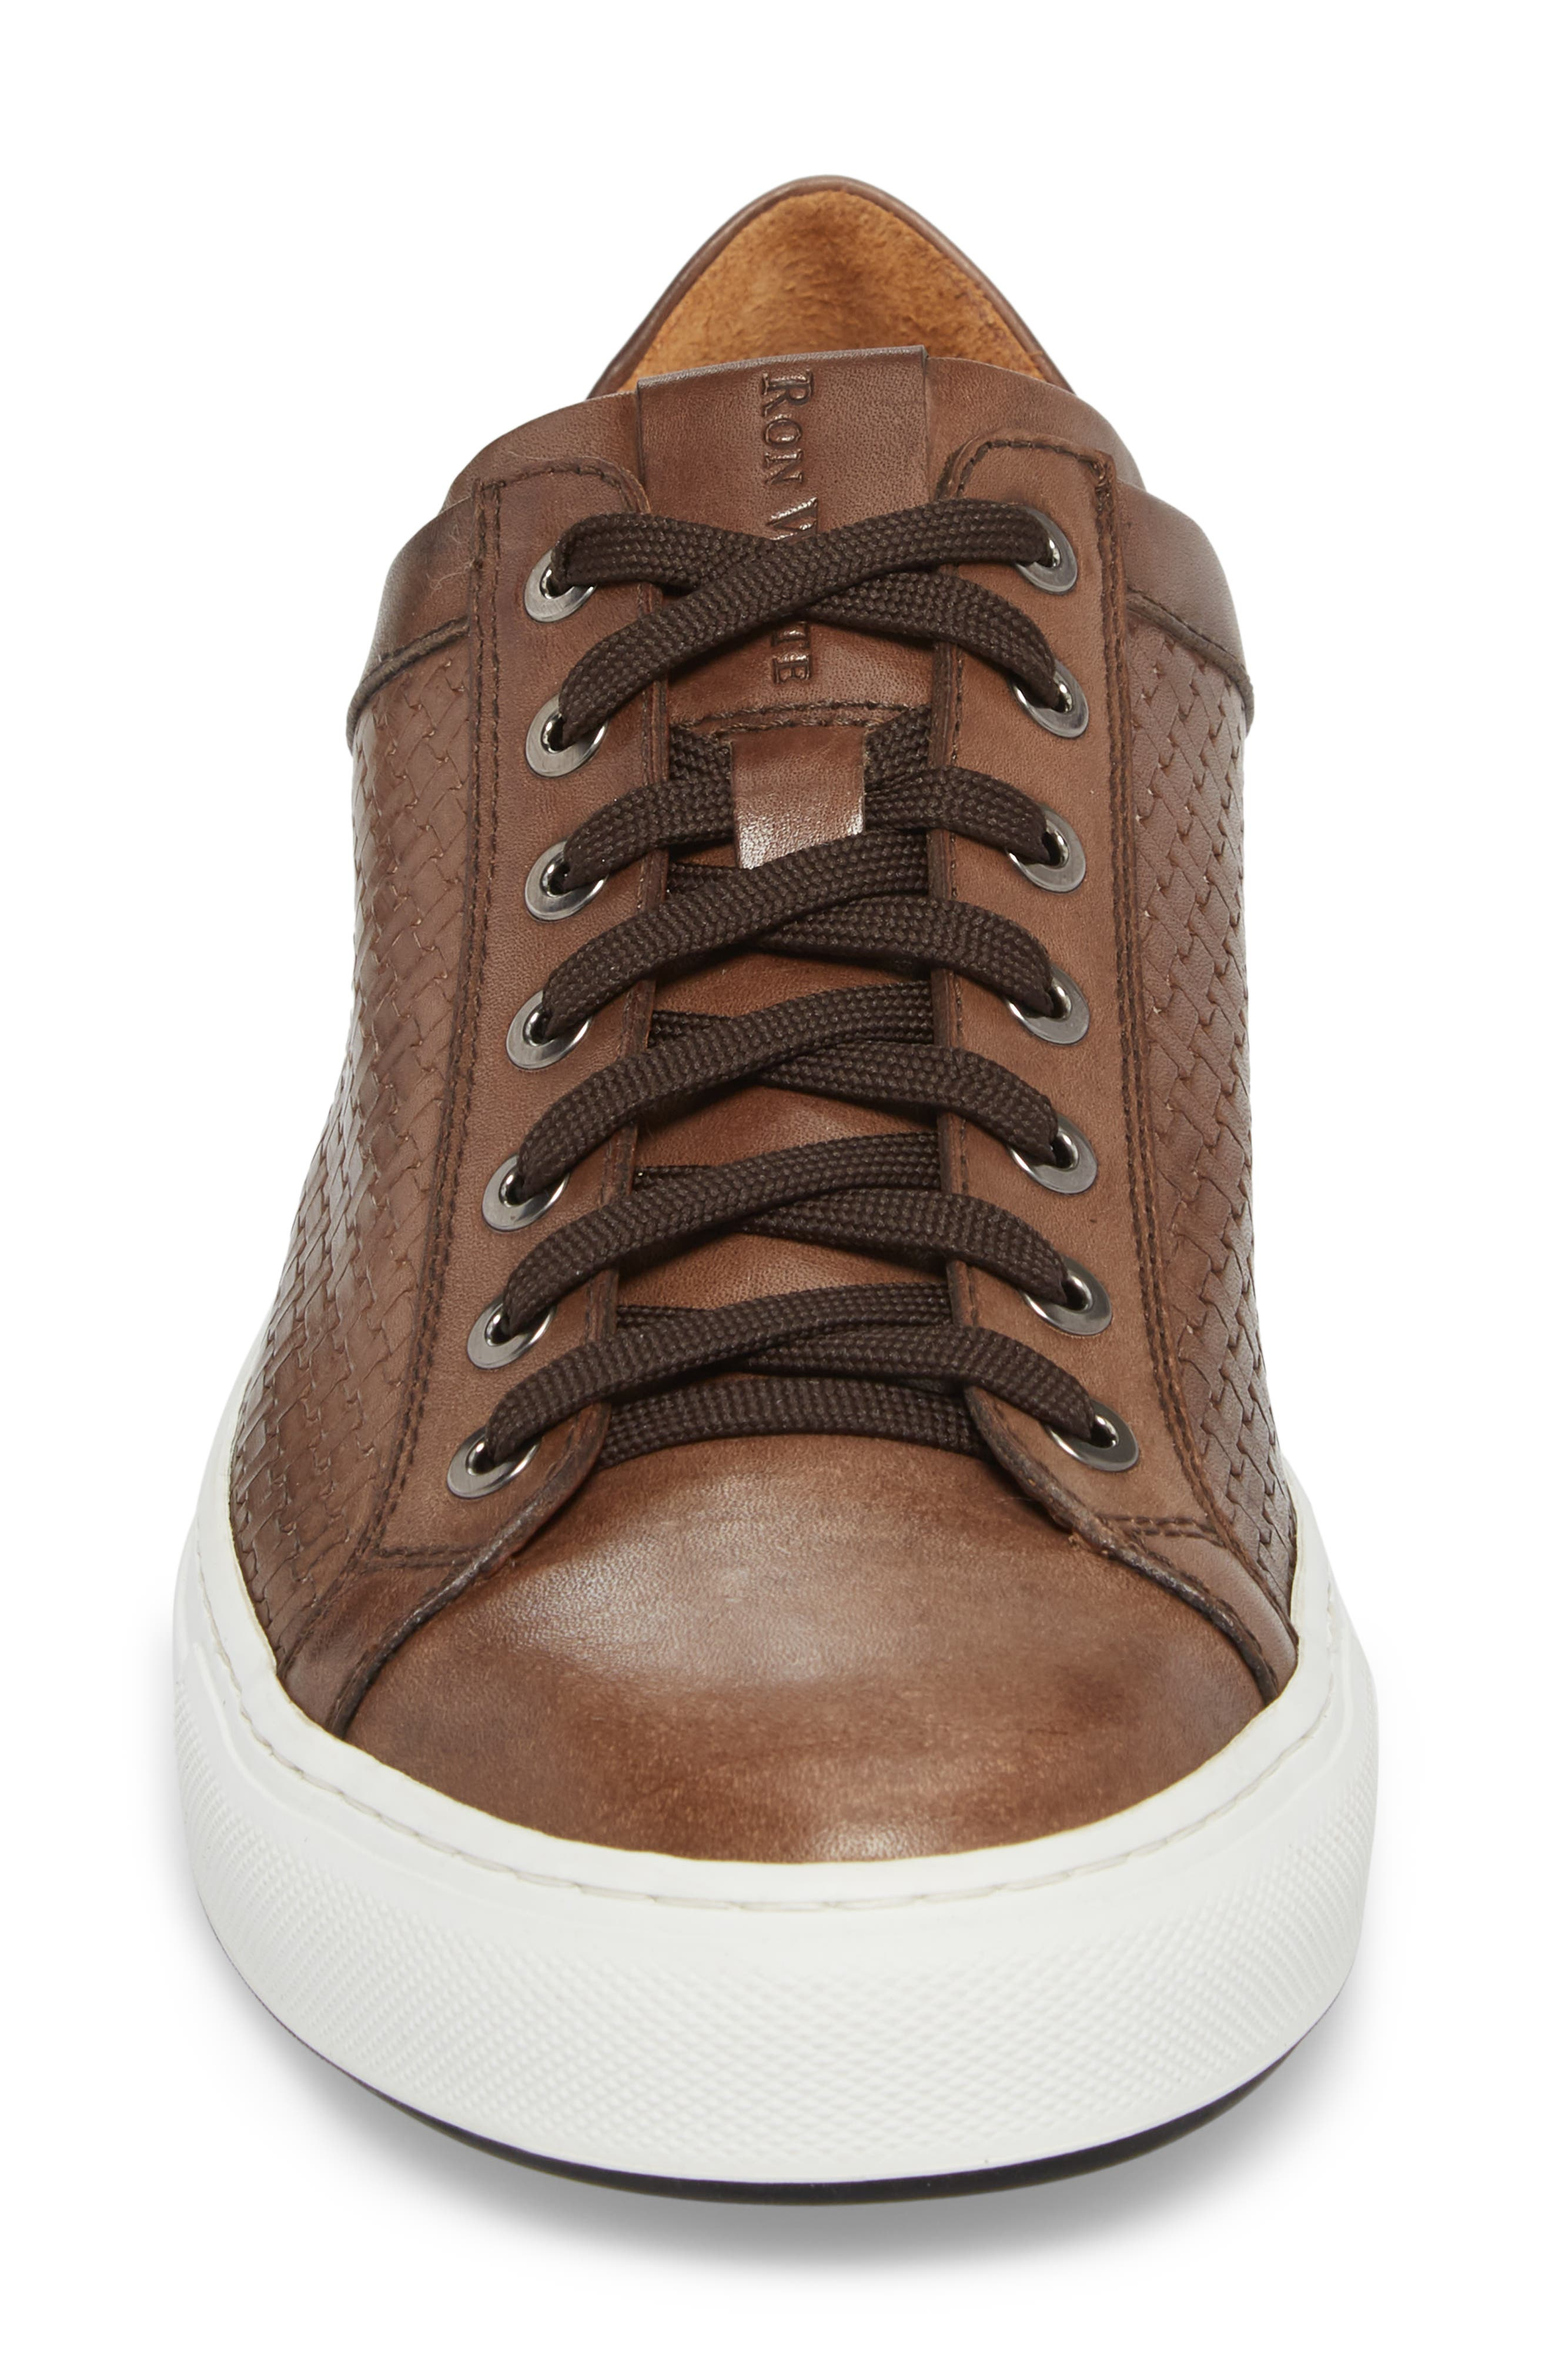 Diego Sneaker,                             Alternate thumbnail 4, color,                             WALNUT